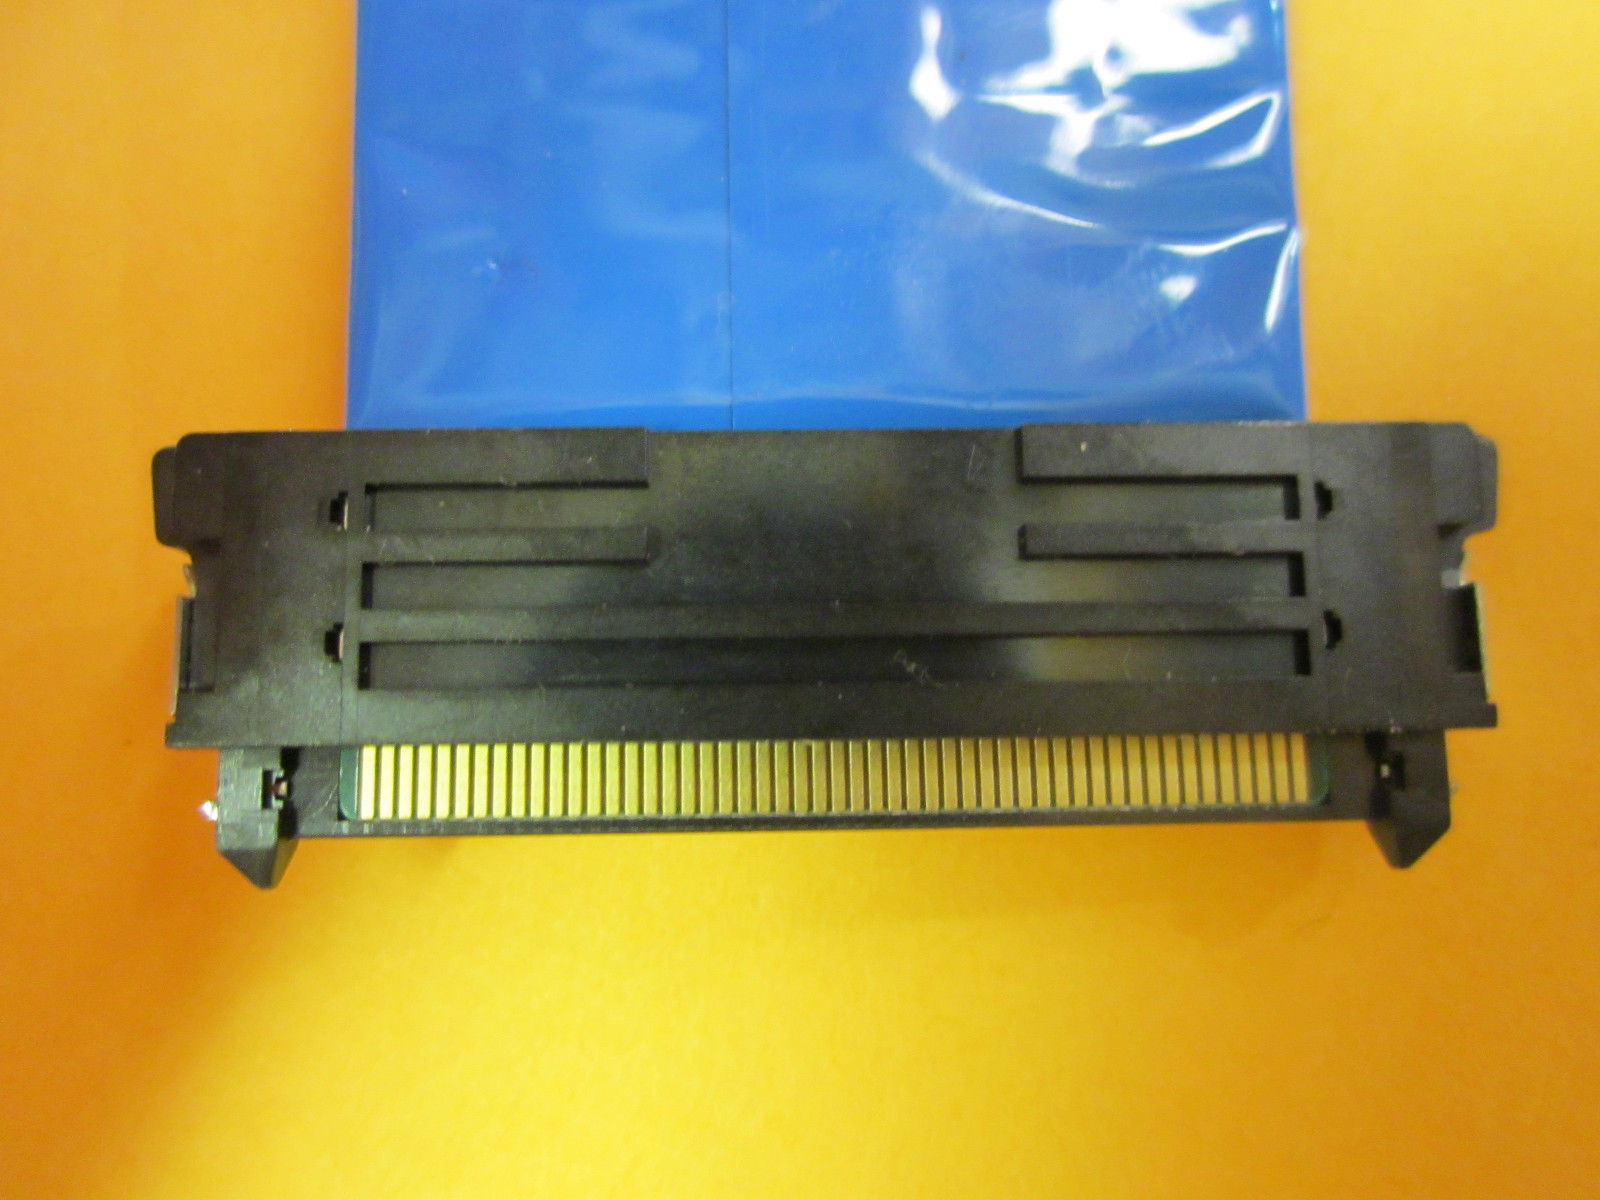 LG EAD62370714 LVDS Cable from Main Board to T-Con Board [See List]